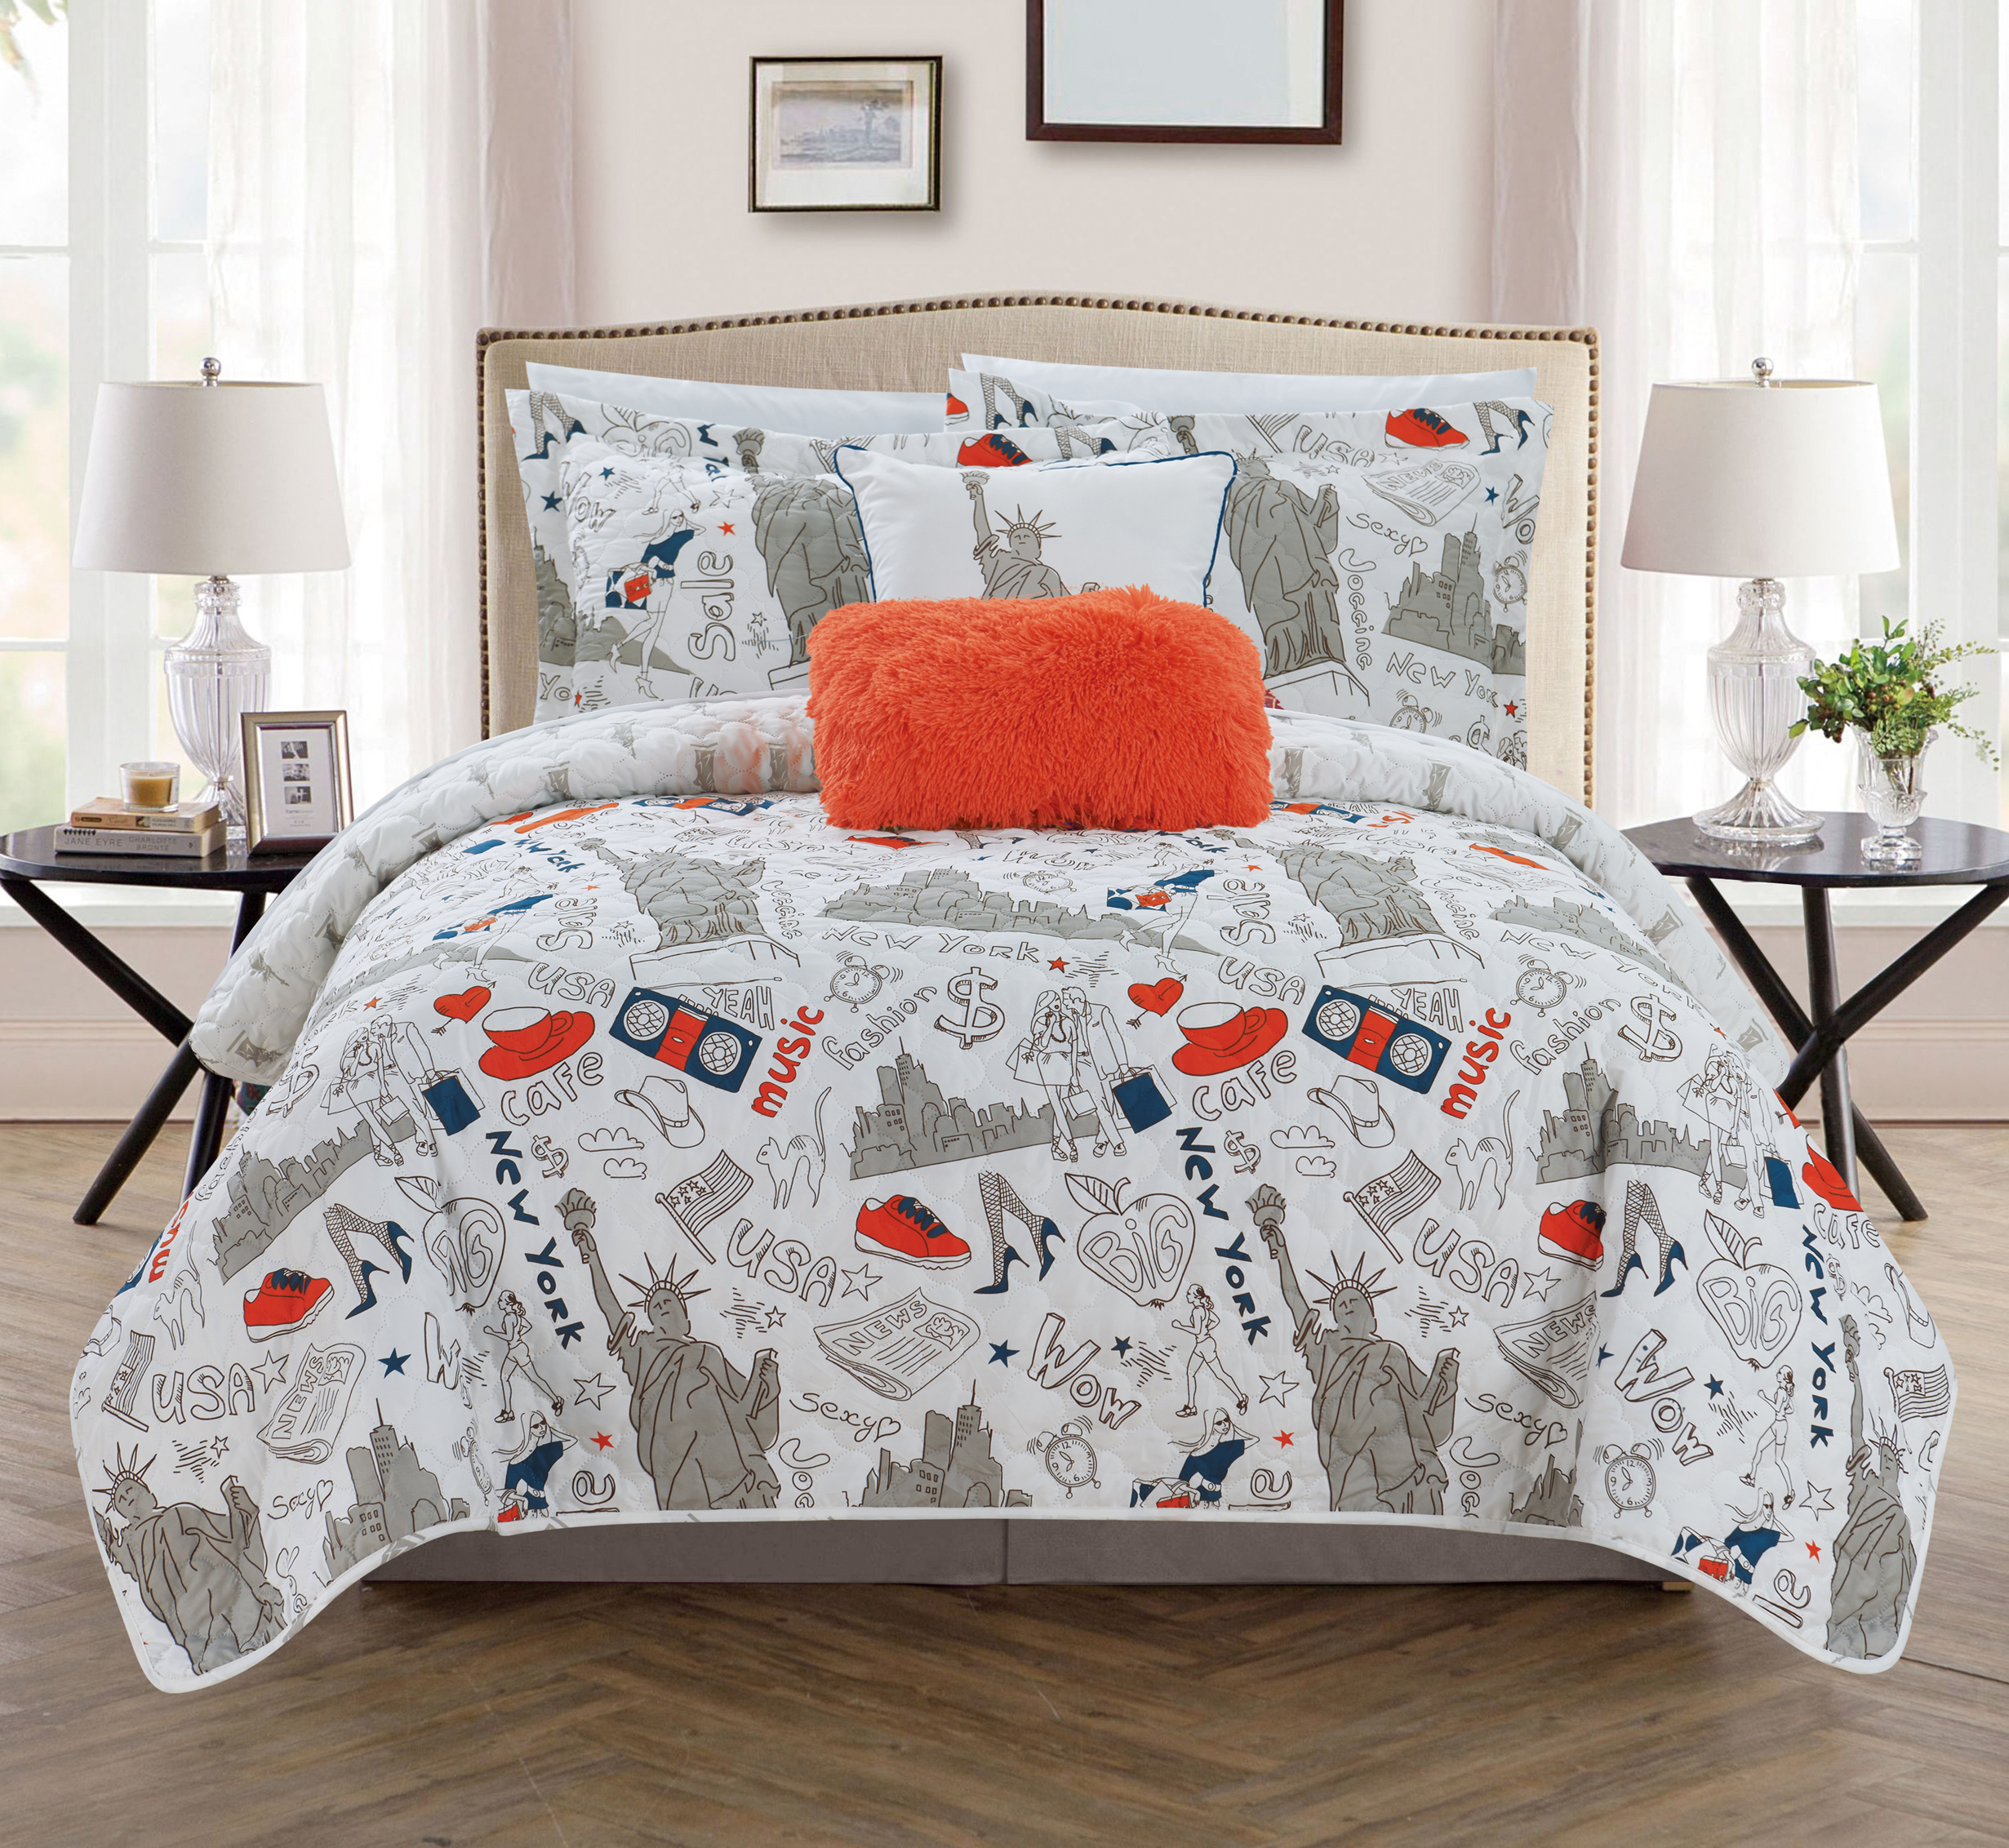 Chic Home Bay Park 4 Piece Reversible Bay Park City Design Quilt Set